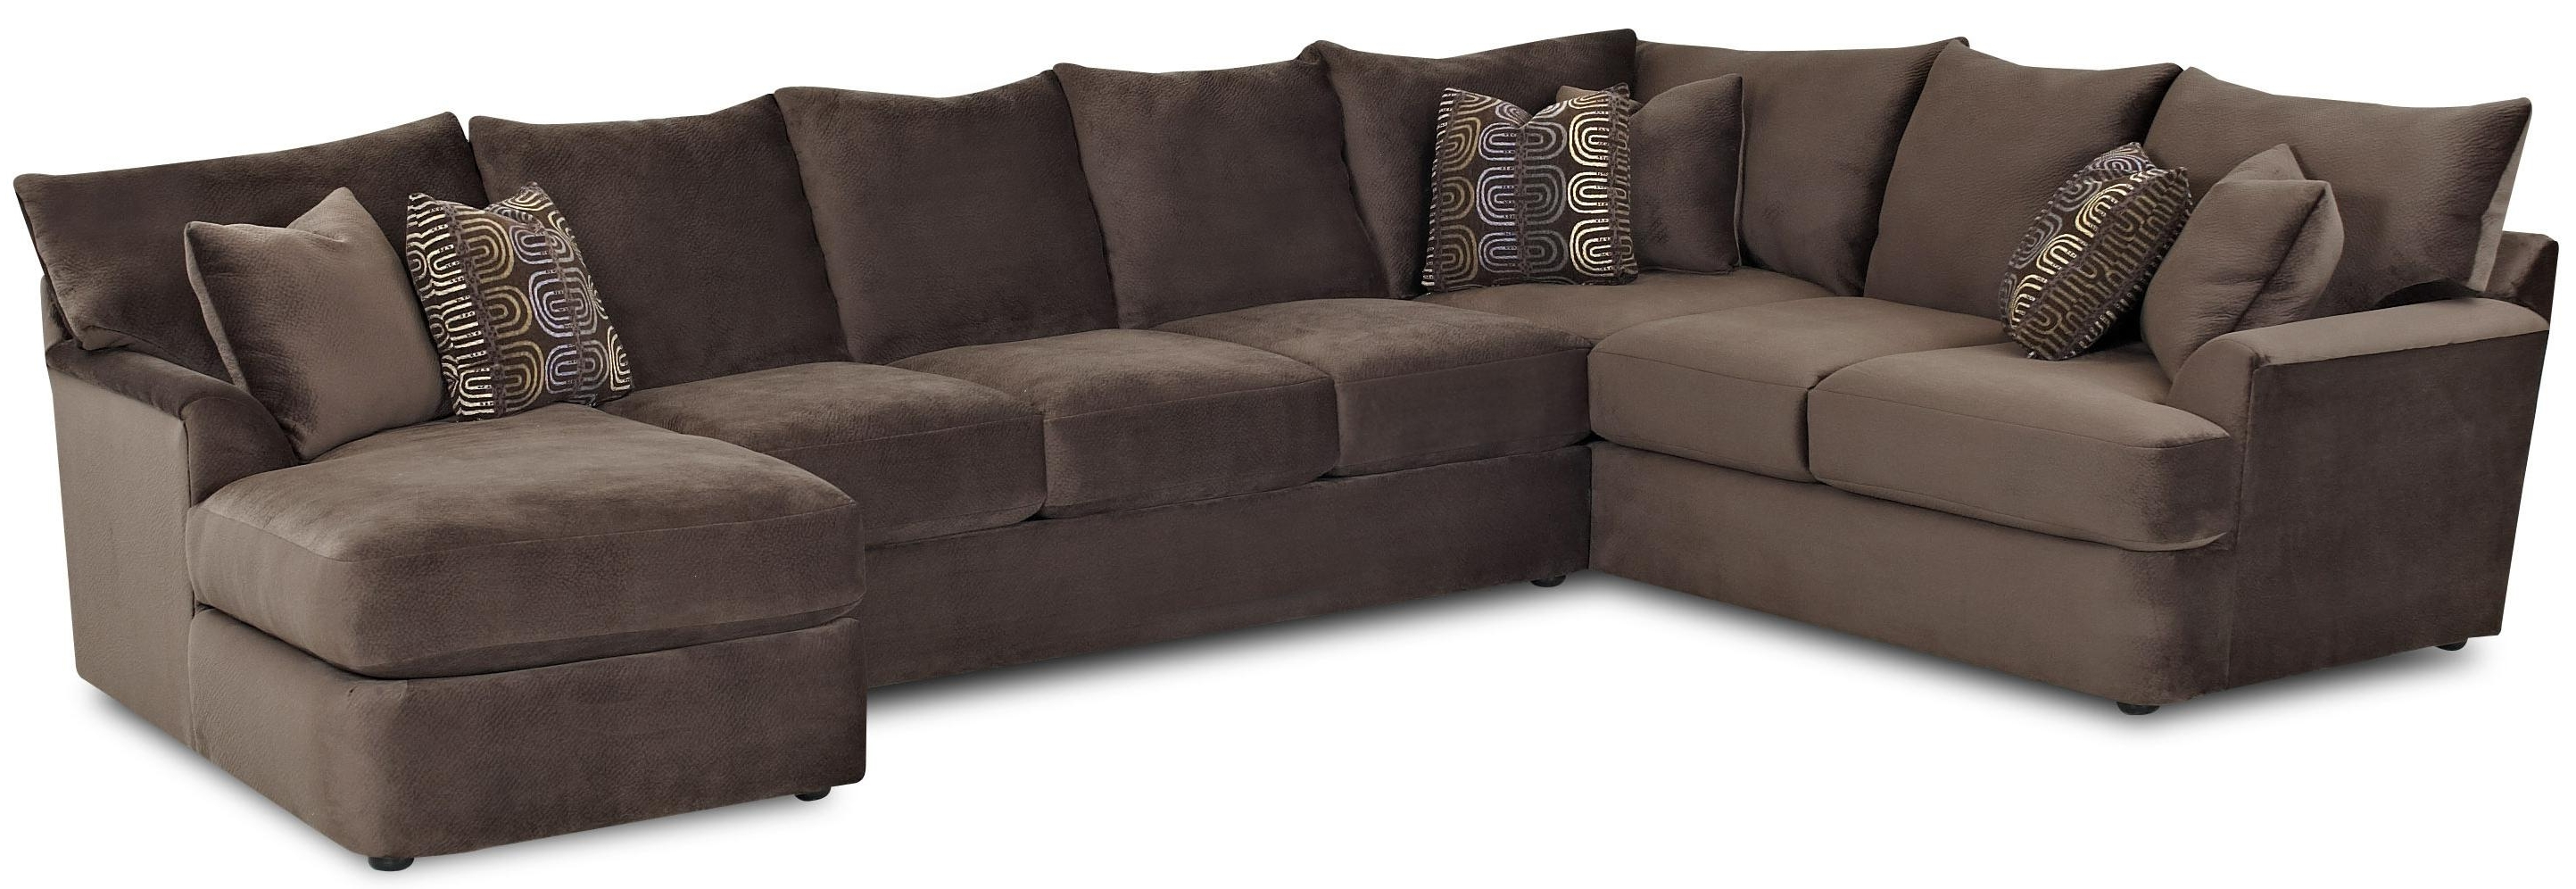 Furniture Buy Sectional Sofa Large L Shaped Sofa Comfy Couch Cheap Throughout Fashionable Leather L Shaped Sectional Sofas (View 6 of 15)